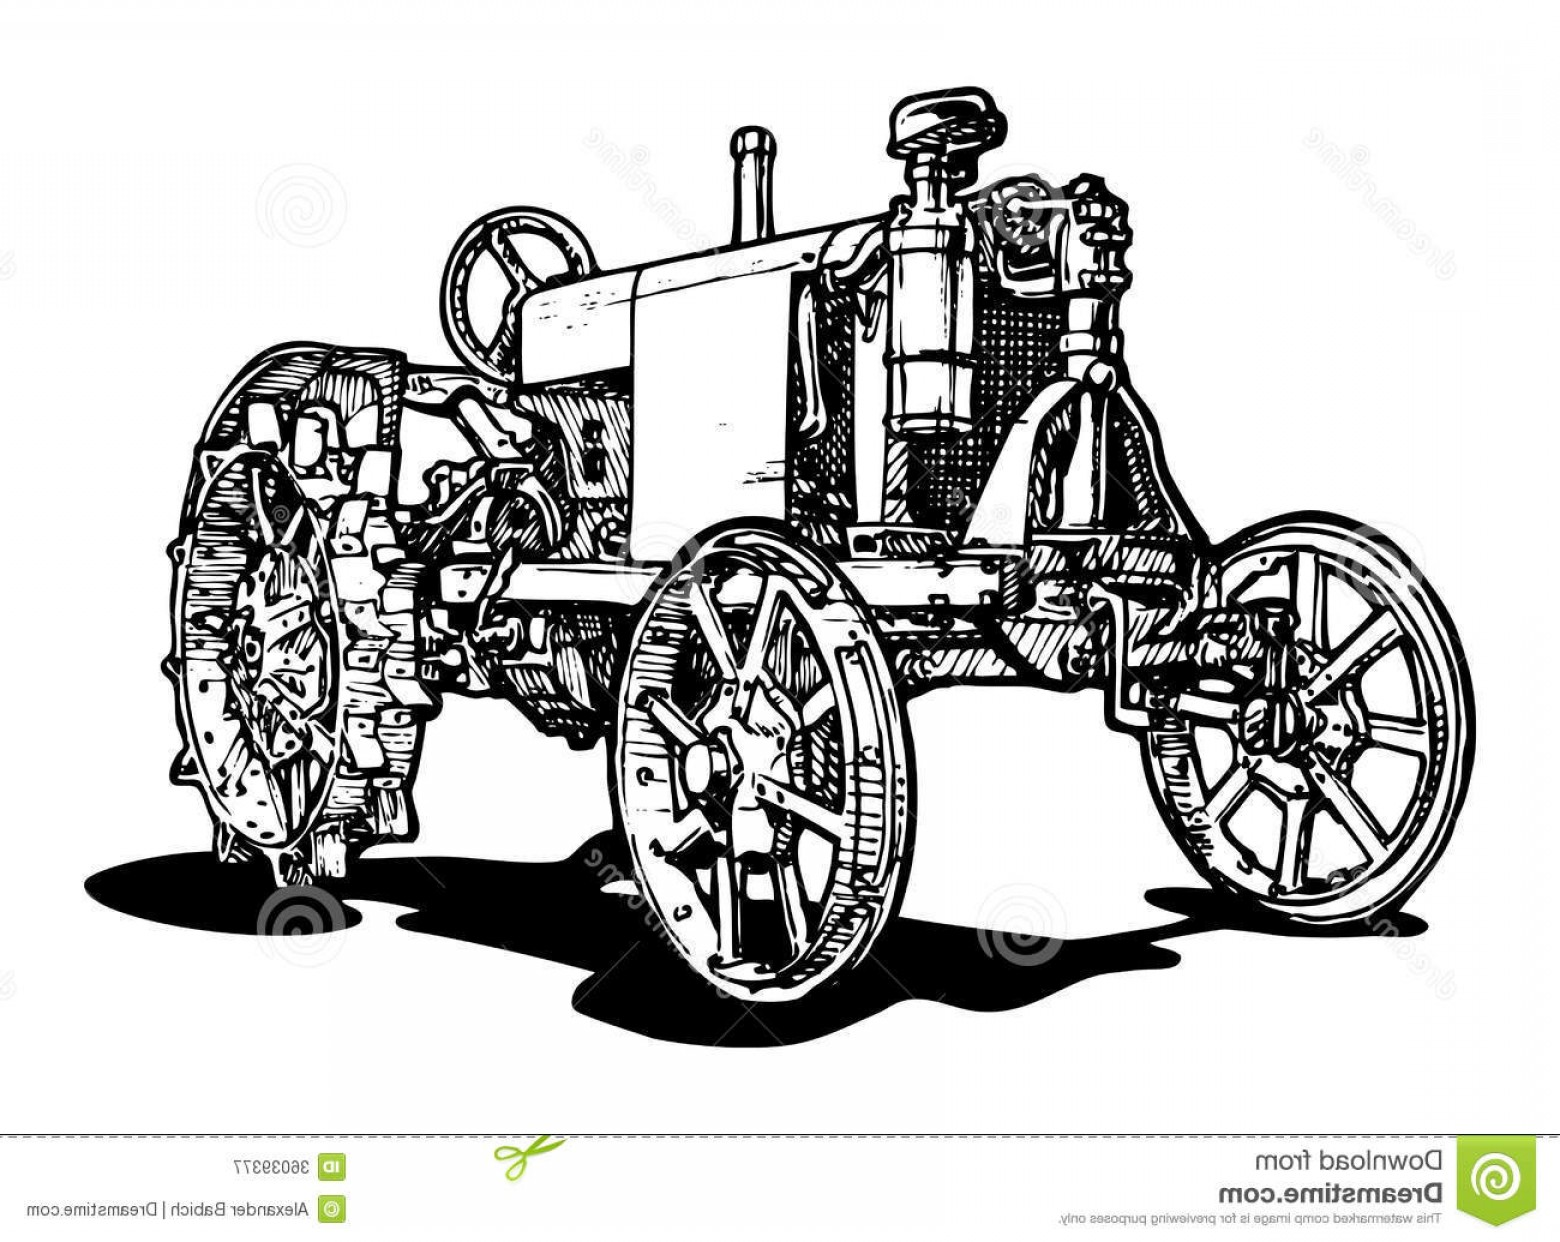 Free Tractor Vector: Royalty Free Stock Photography Tractor Vector Drawing Stylized As Engraving Image